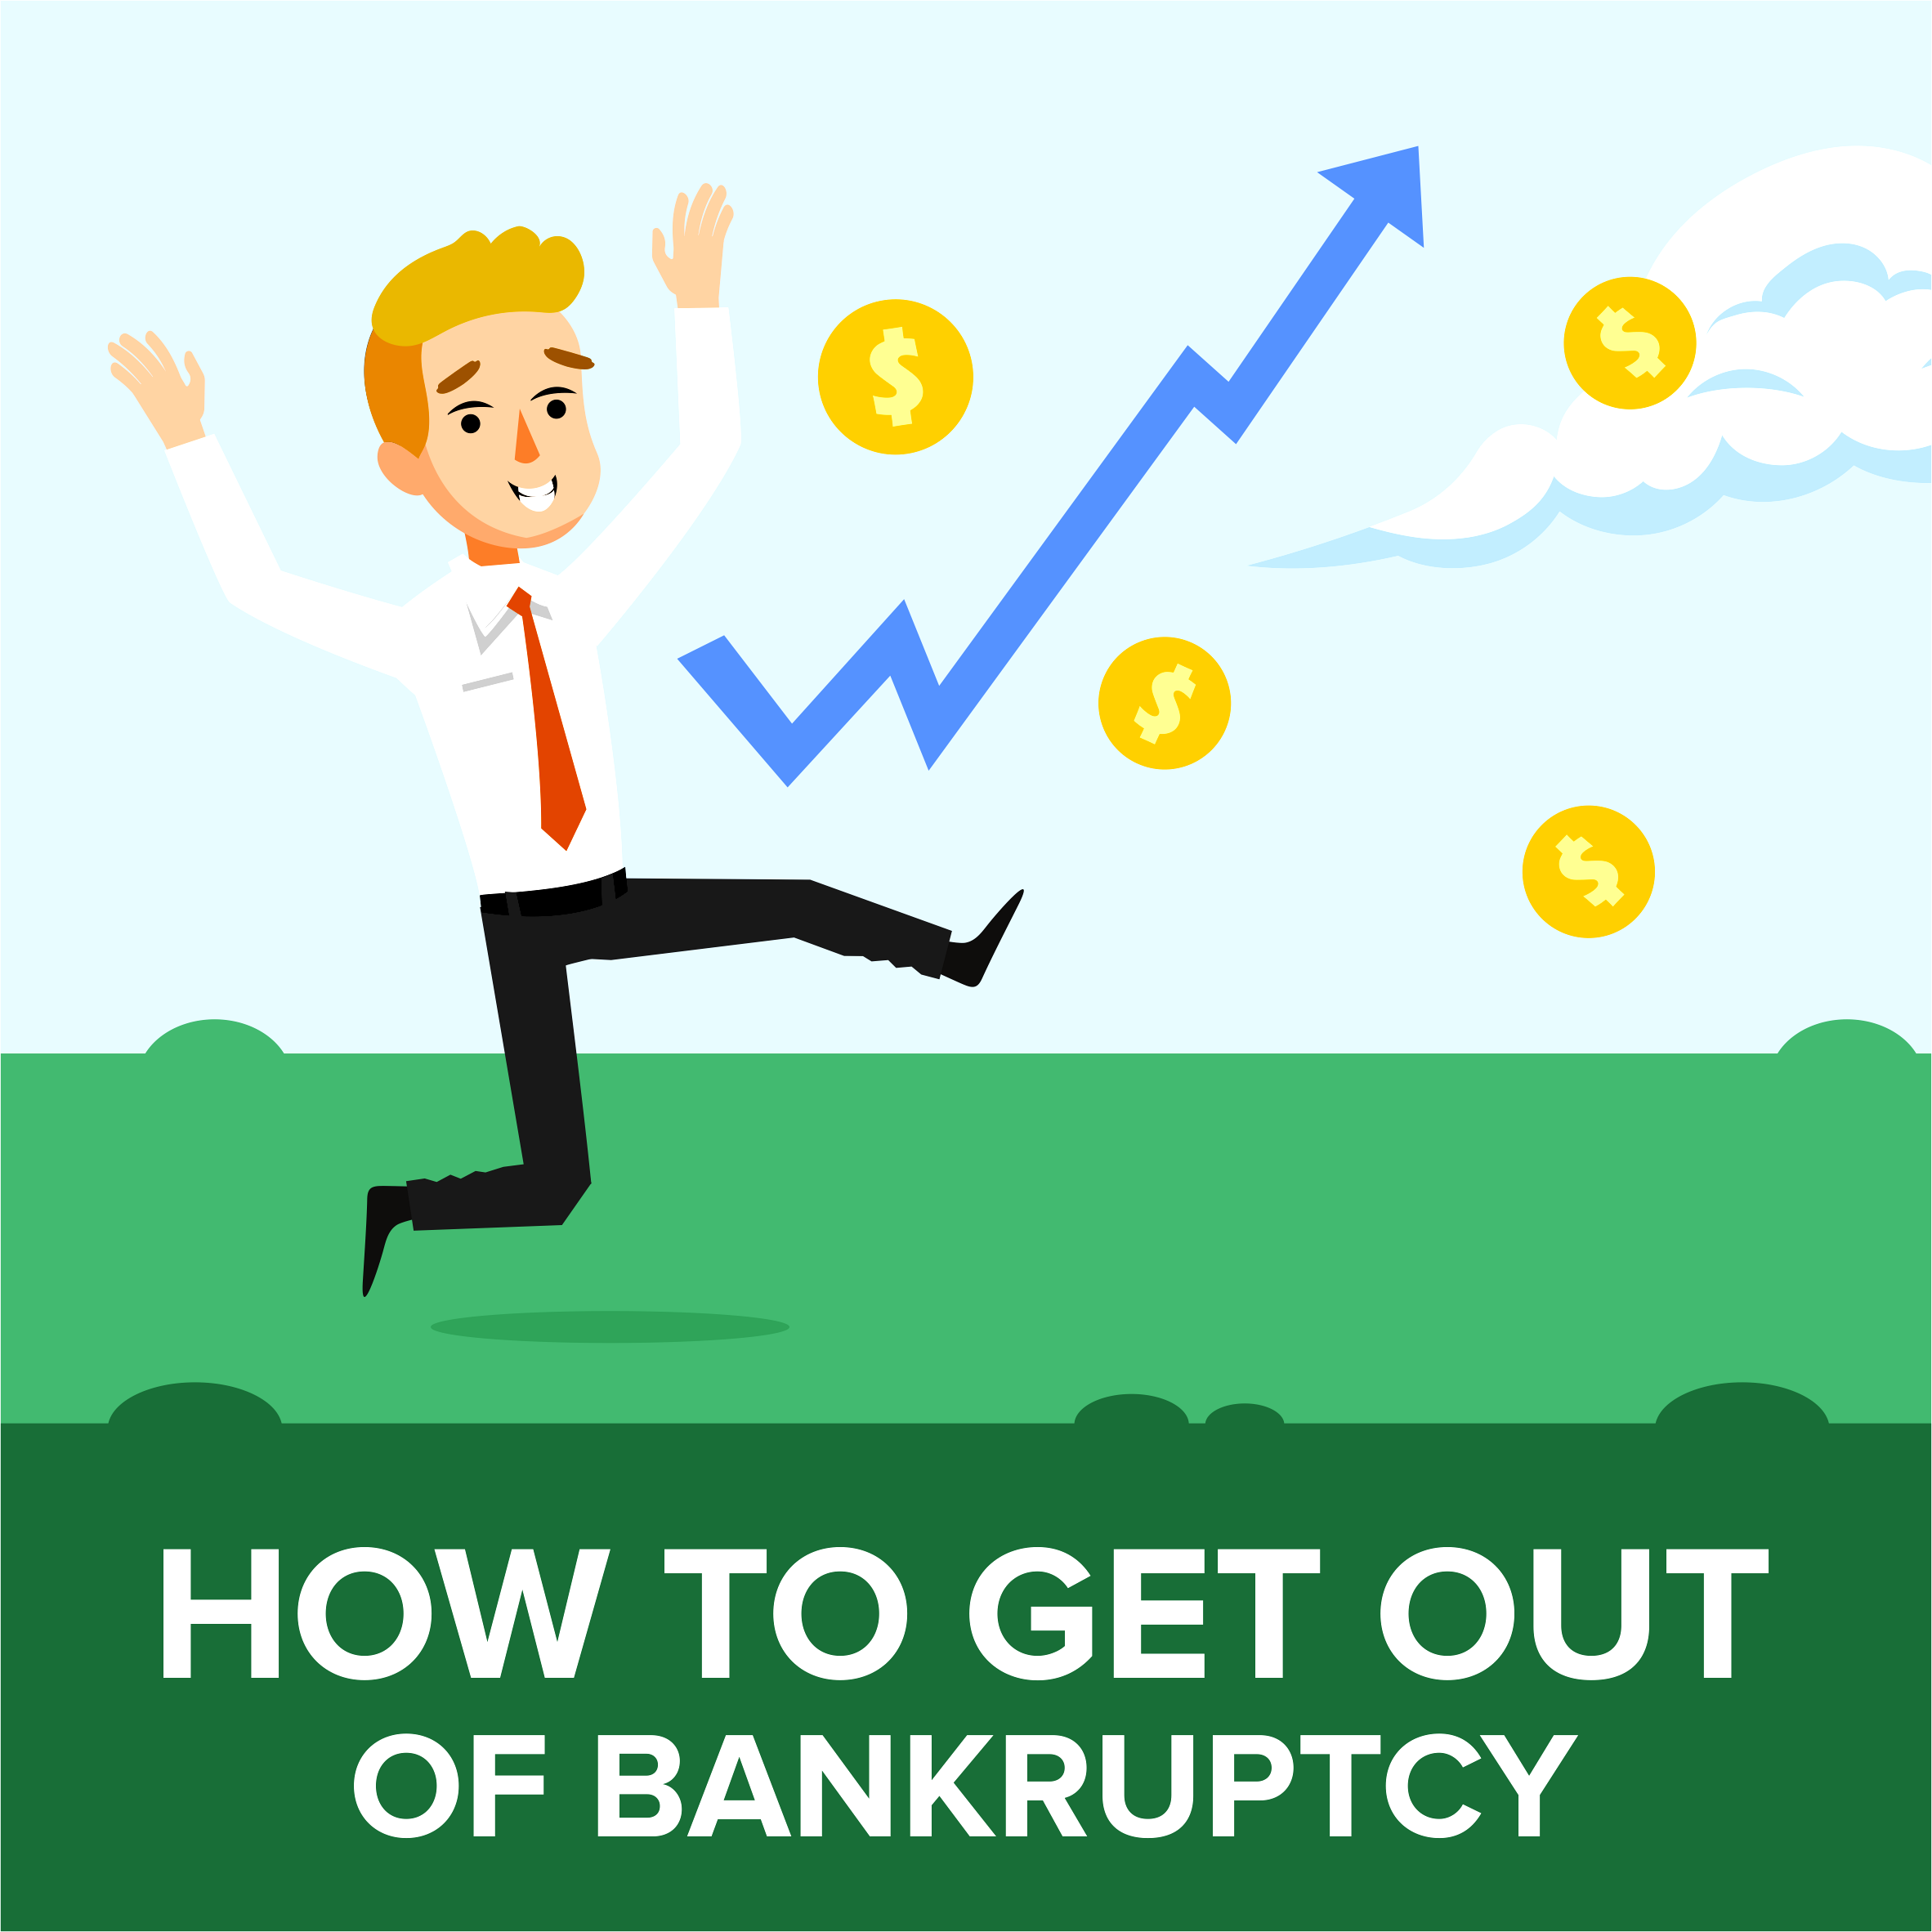 How to Get Out of Bankruptcy